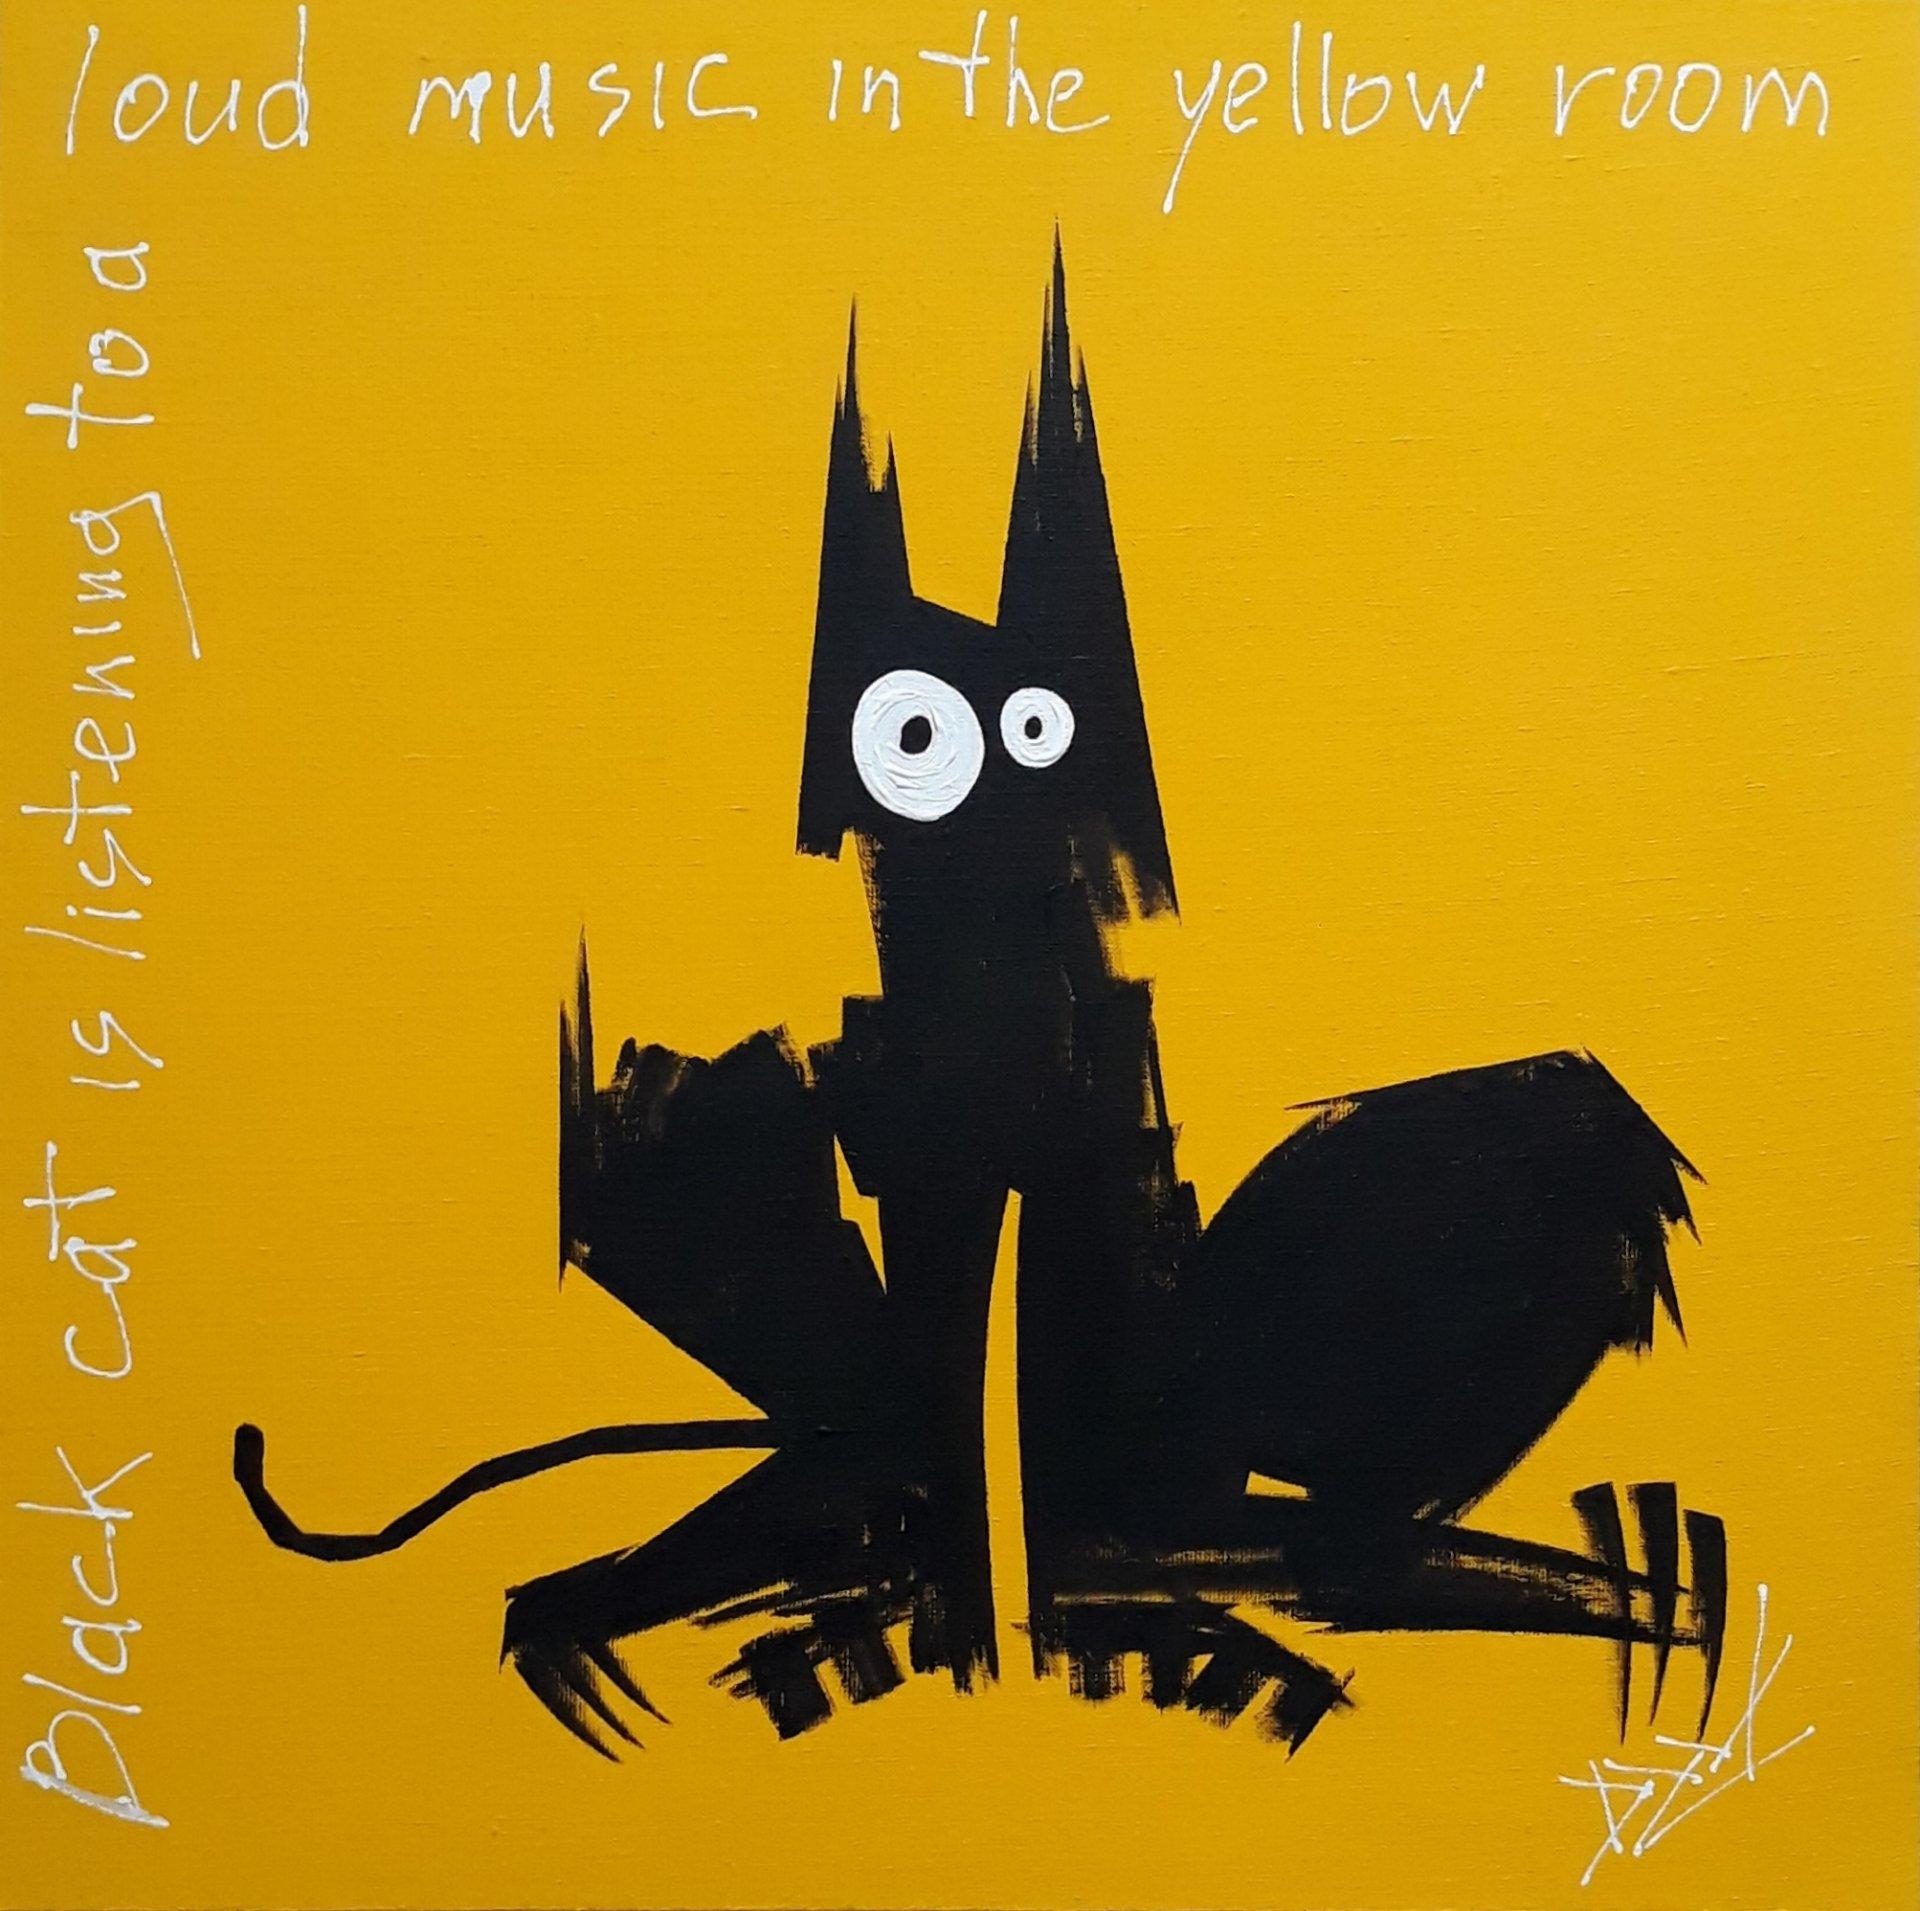 A black cat listens to loud music in the yellow room.